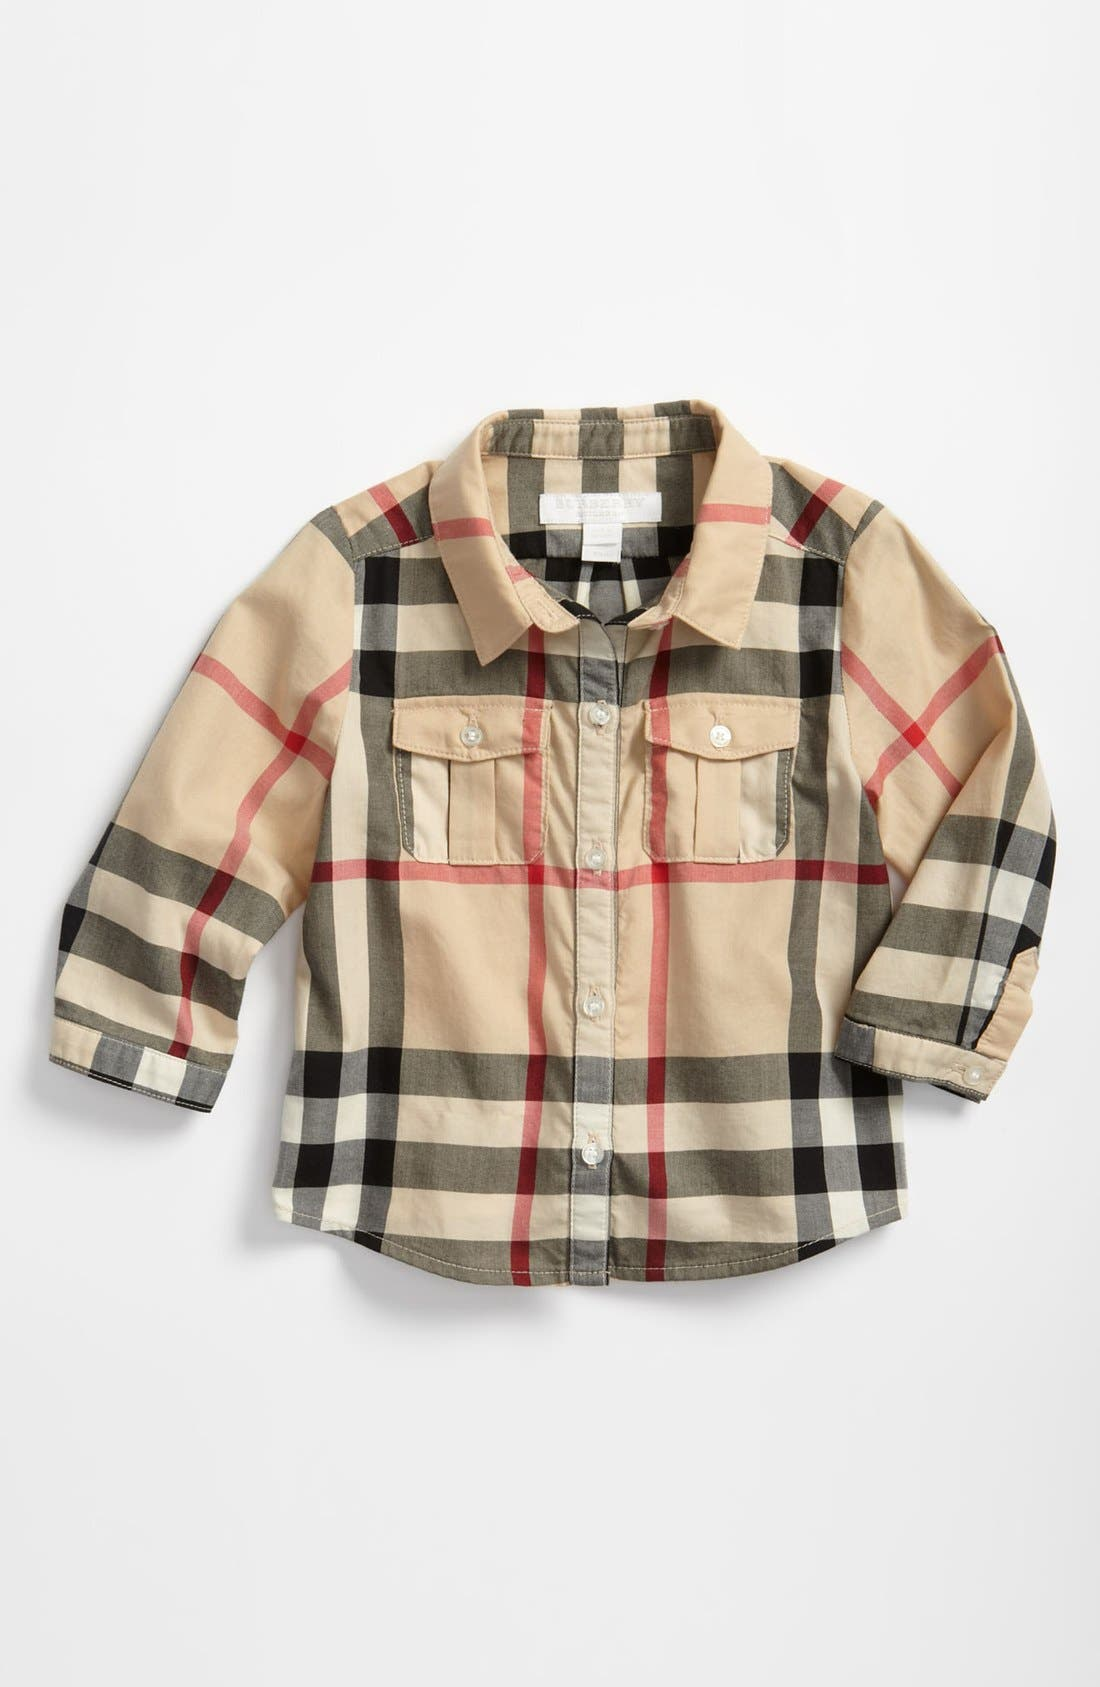 Alternate Image 1 Selected - Burberry Check Print Shirt (Toddler Boys)